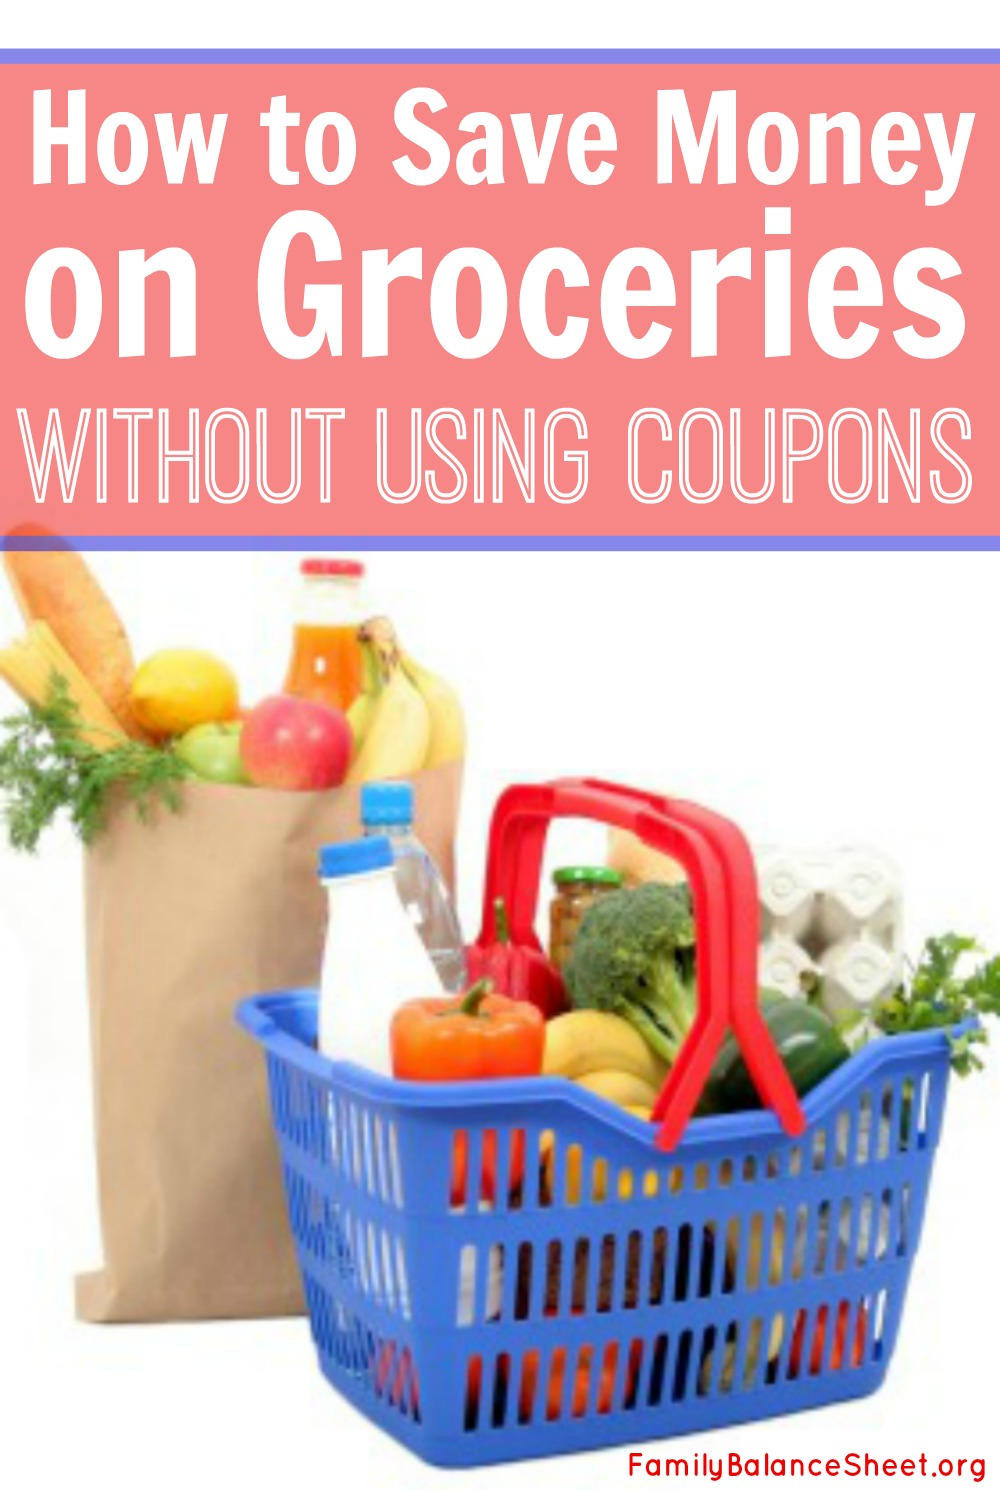 Save on Groceries without Coupons. When my first baby was born, we made a frugal living plan for me to stay home for a year. We downsized our apartment, created a budget, and cut back on extra spending.